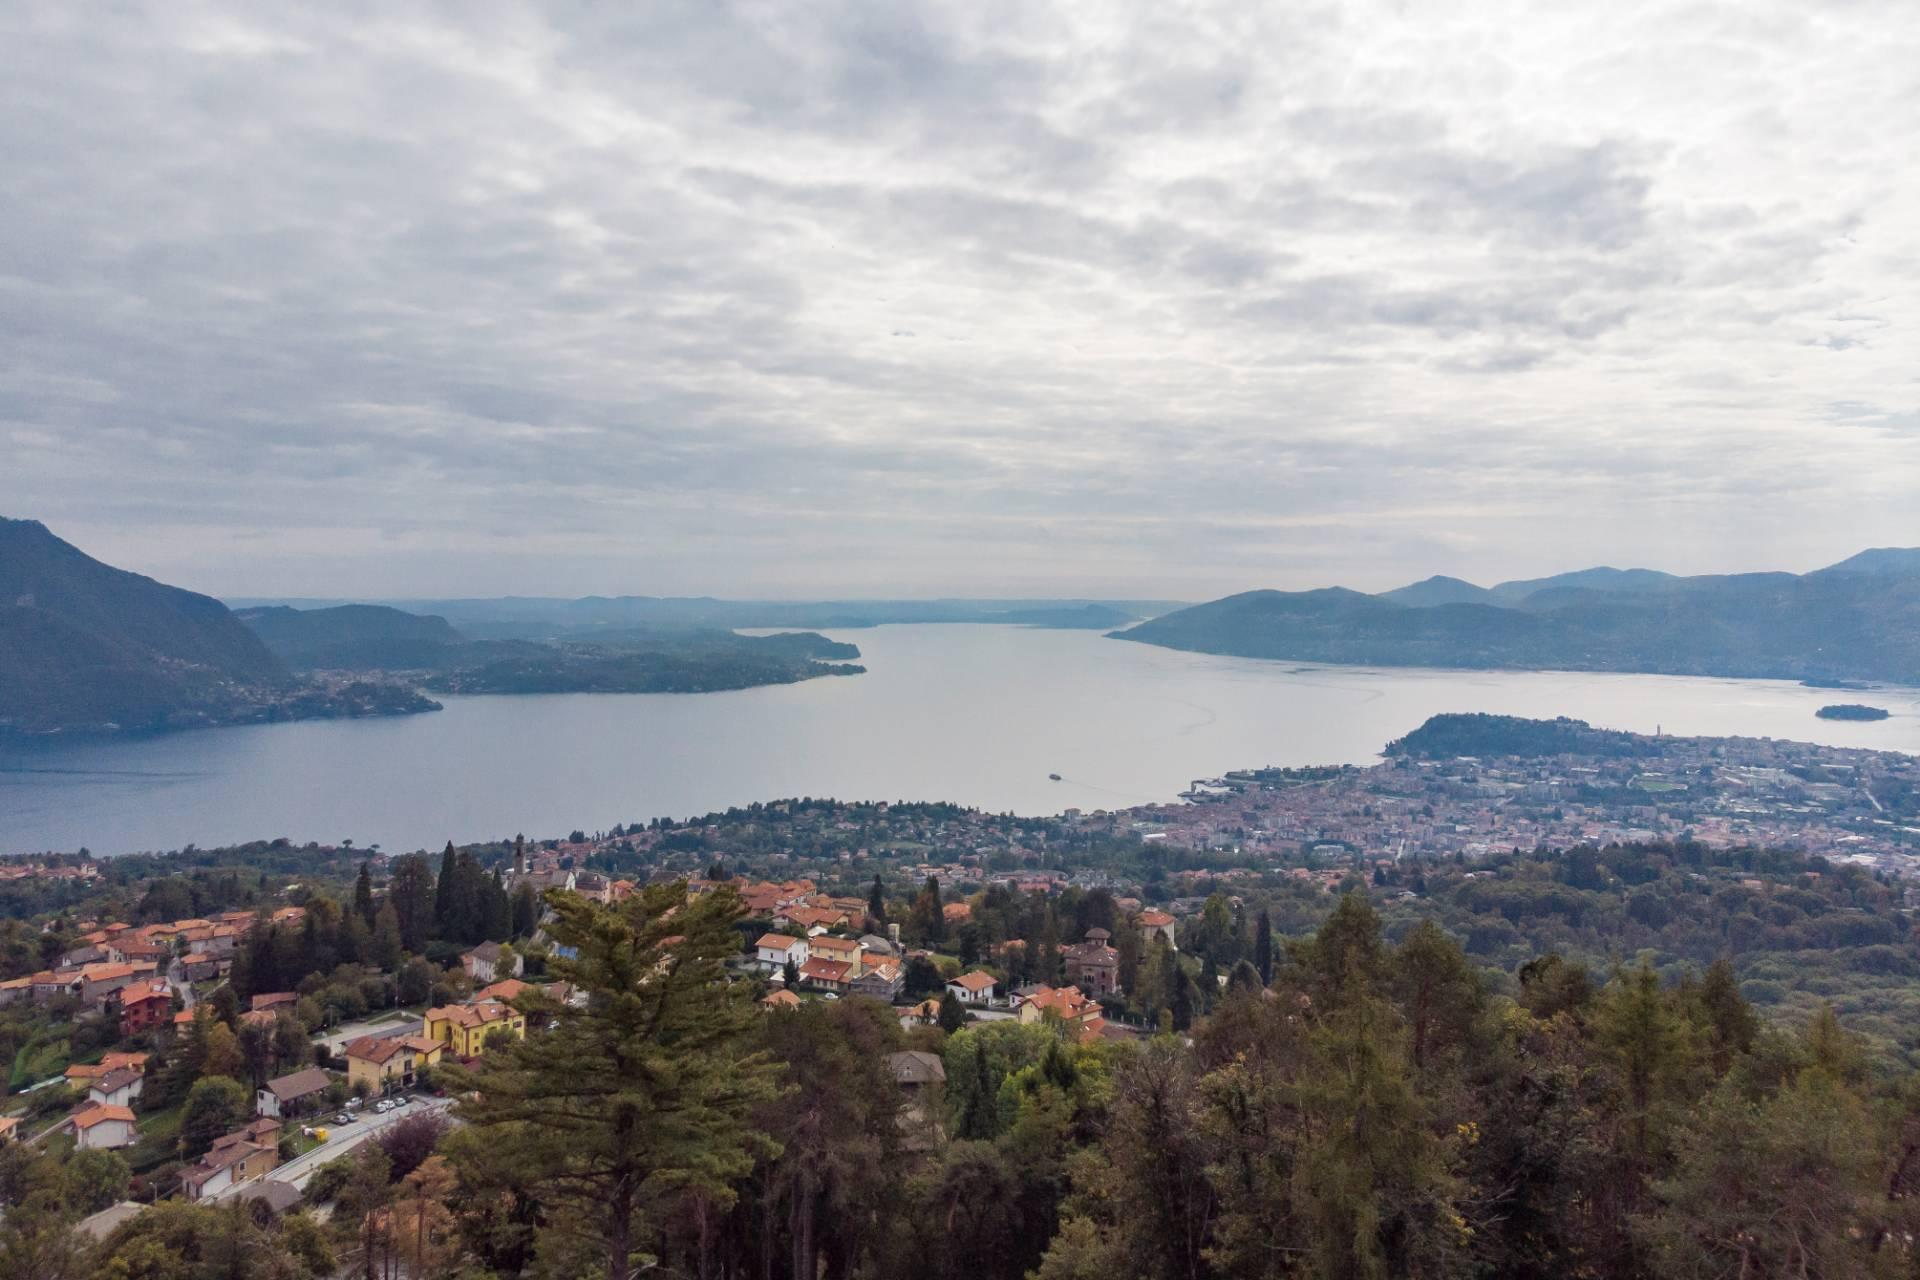 Detached Villa in the hilly area of Verbania with wonderful lake view - 7